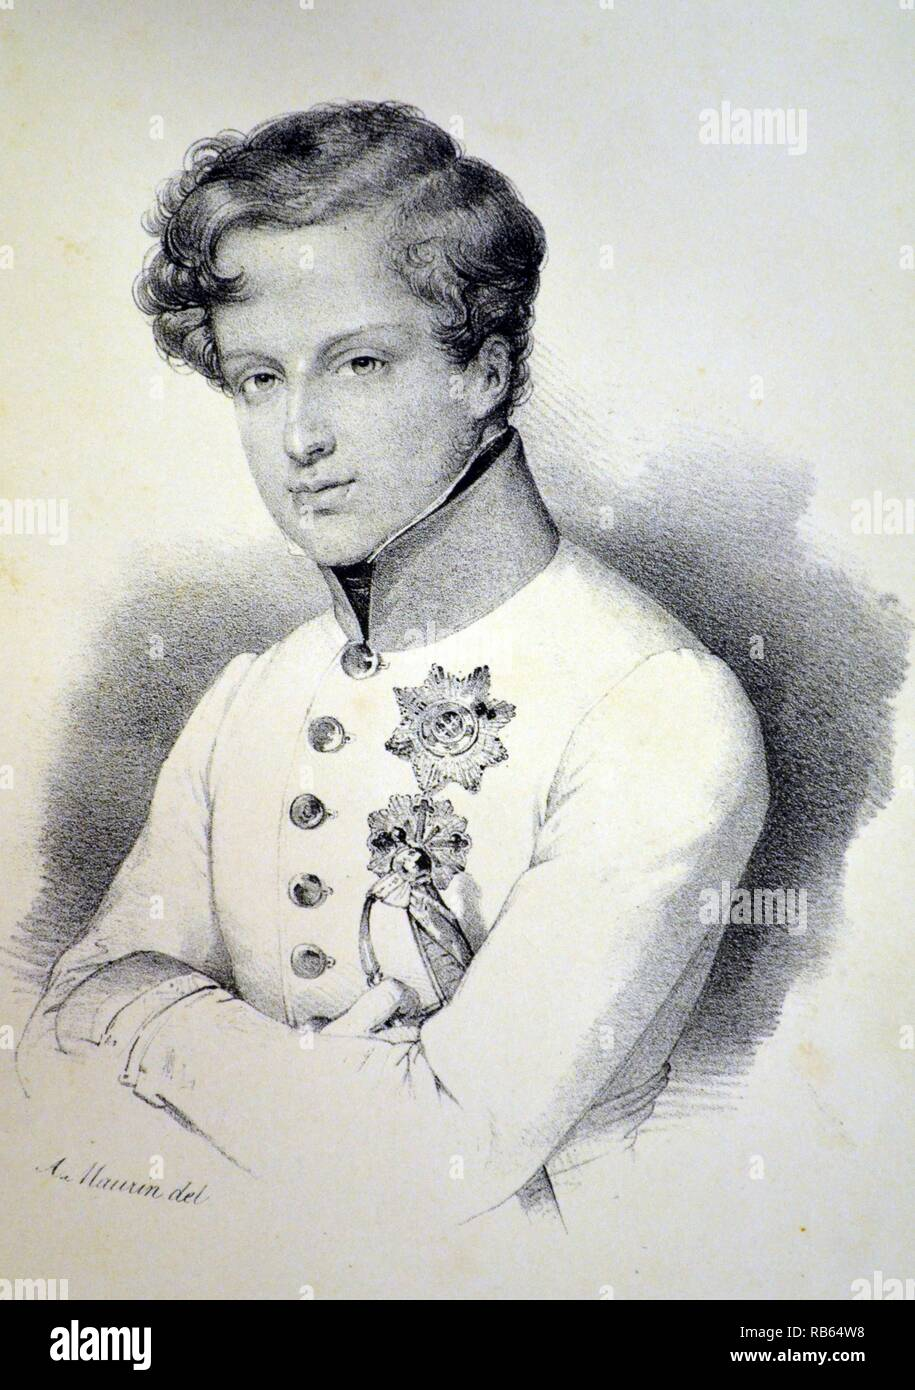 Napoleon II, Duke of Reichstadt, also known as the King of Rome (1811-1832), son of Napoleon I and Marie Louise of Austria, Lithograph, Paris, c1840. Stock Photo